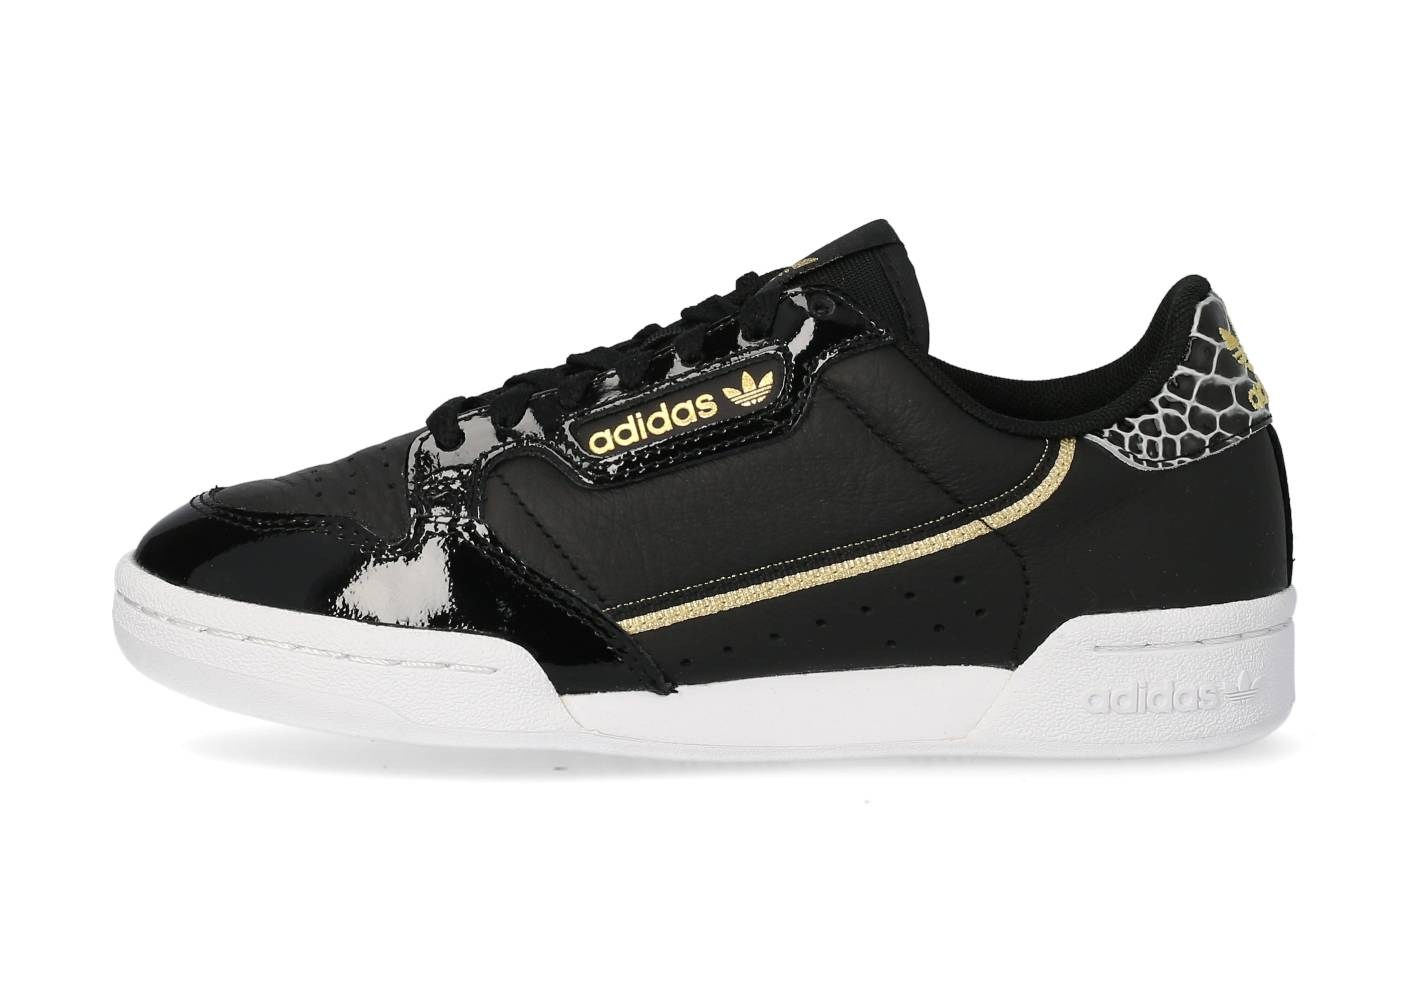 adidas Tennis adidas Continental 80 Noire Et Or Femme 40